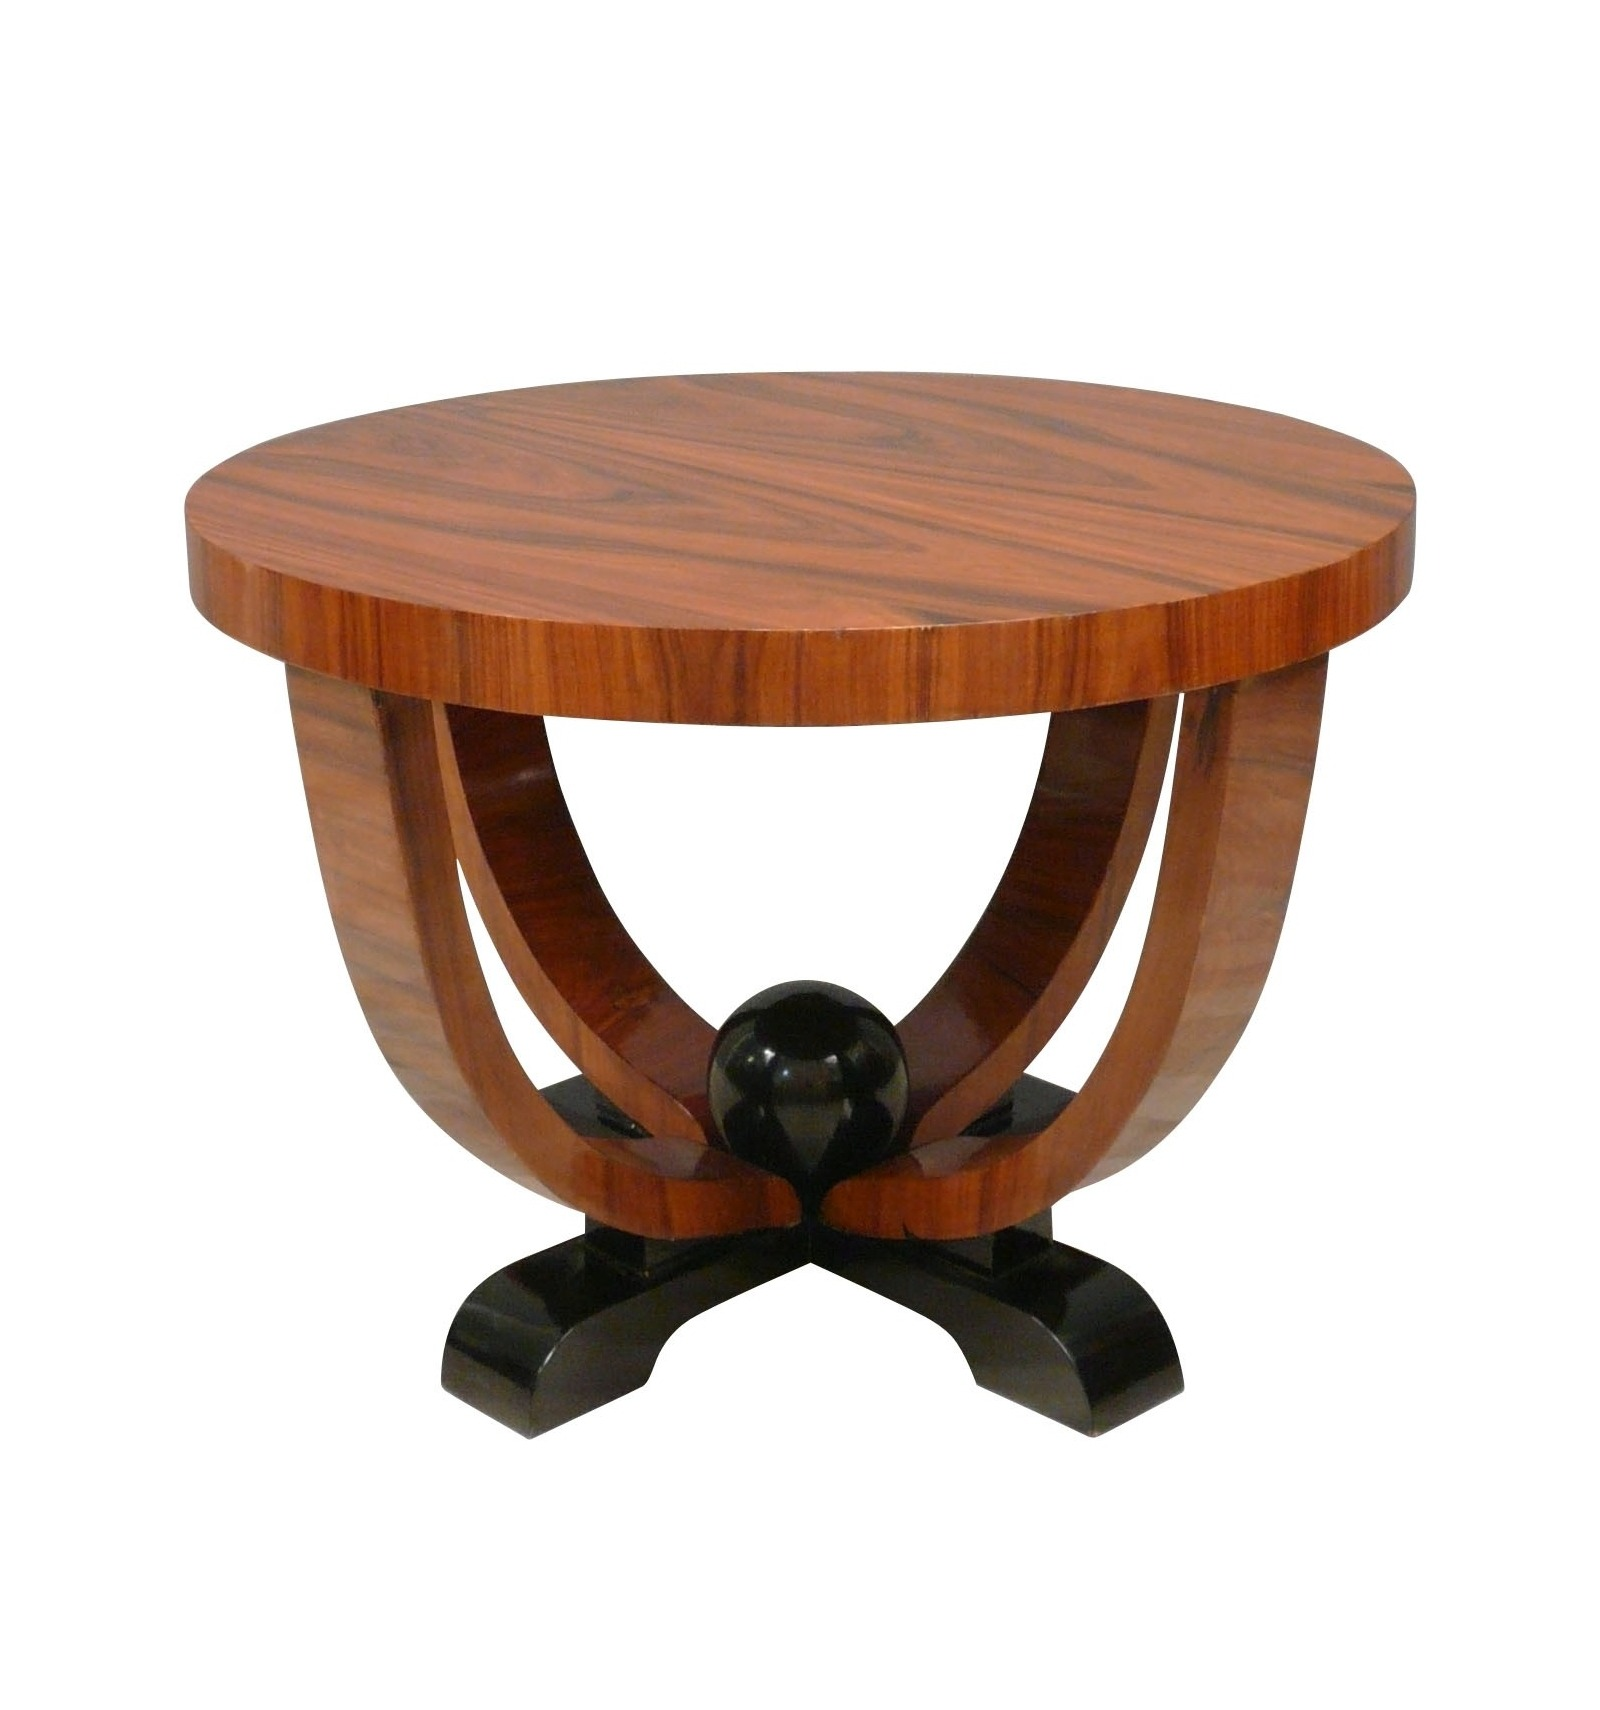 Table basse art d co ronde mobilier de style - Deco table ronde ...